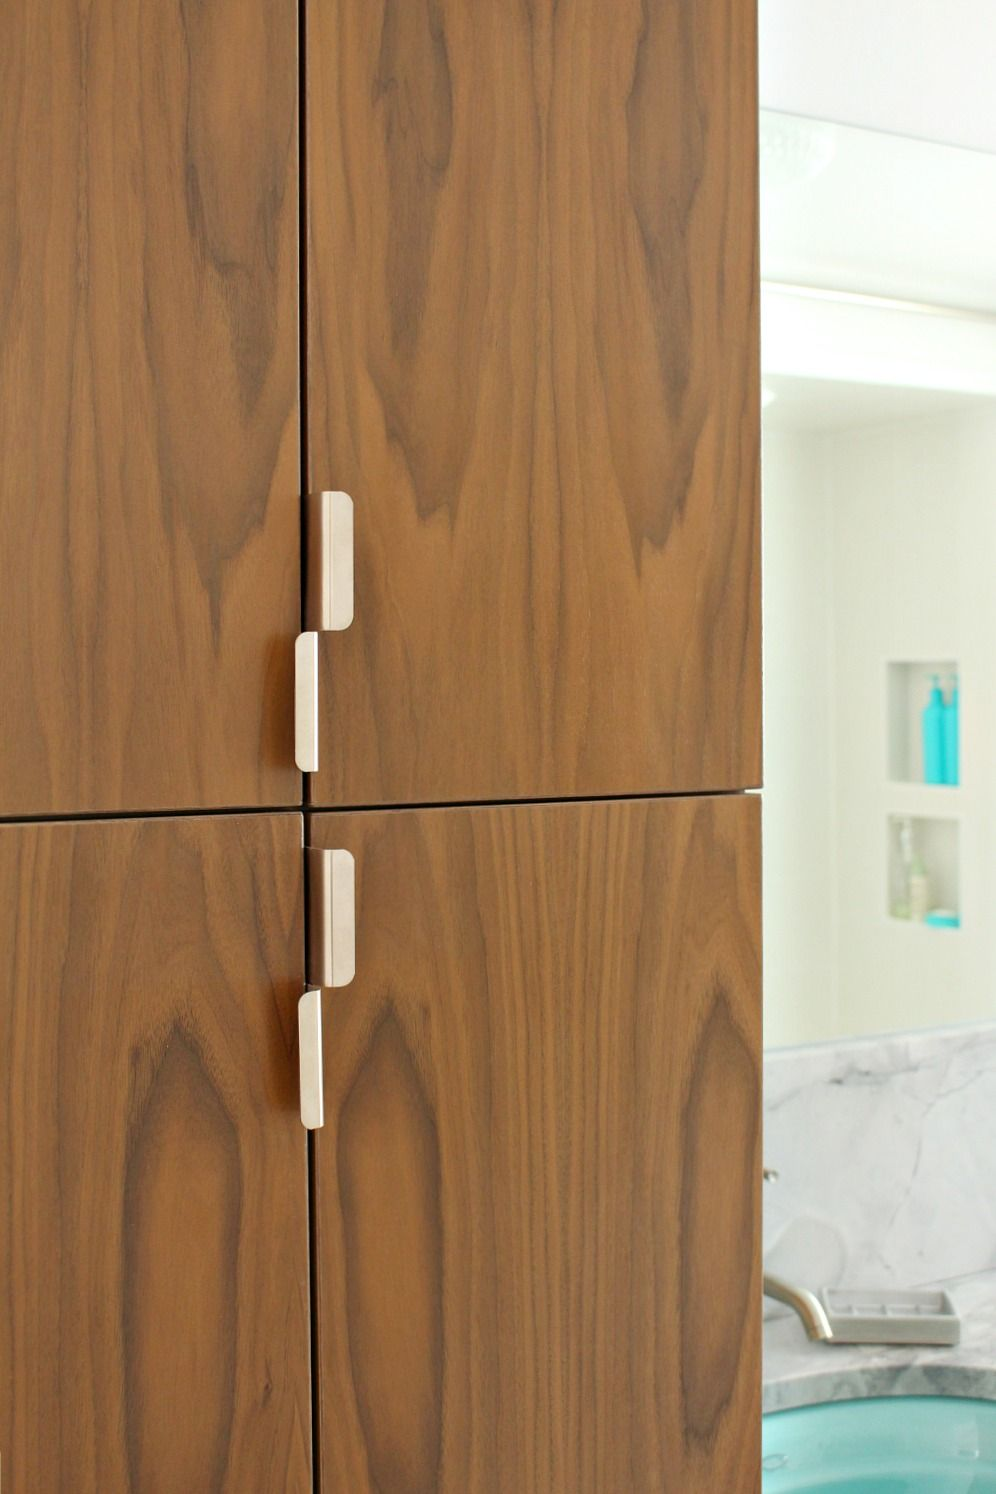 Vertical Pulls On Tall Cabinet Doors Mid Century Modern Bathroom